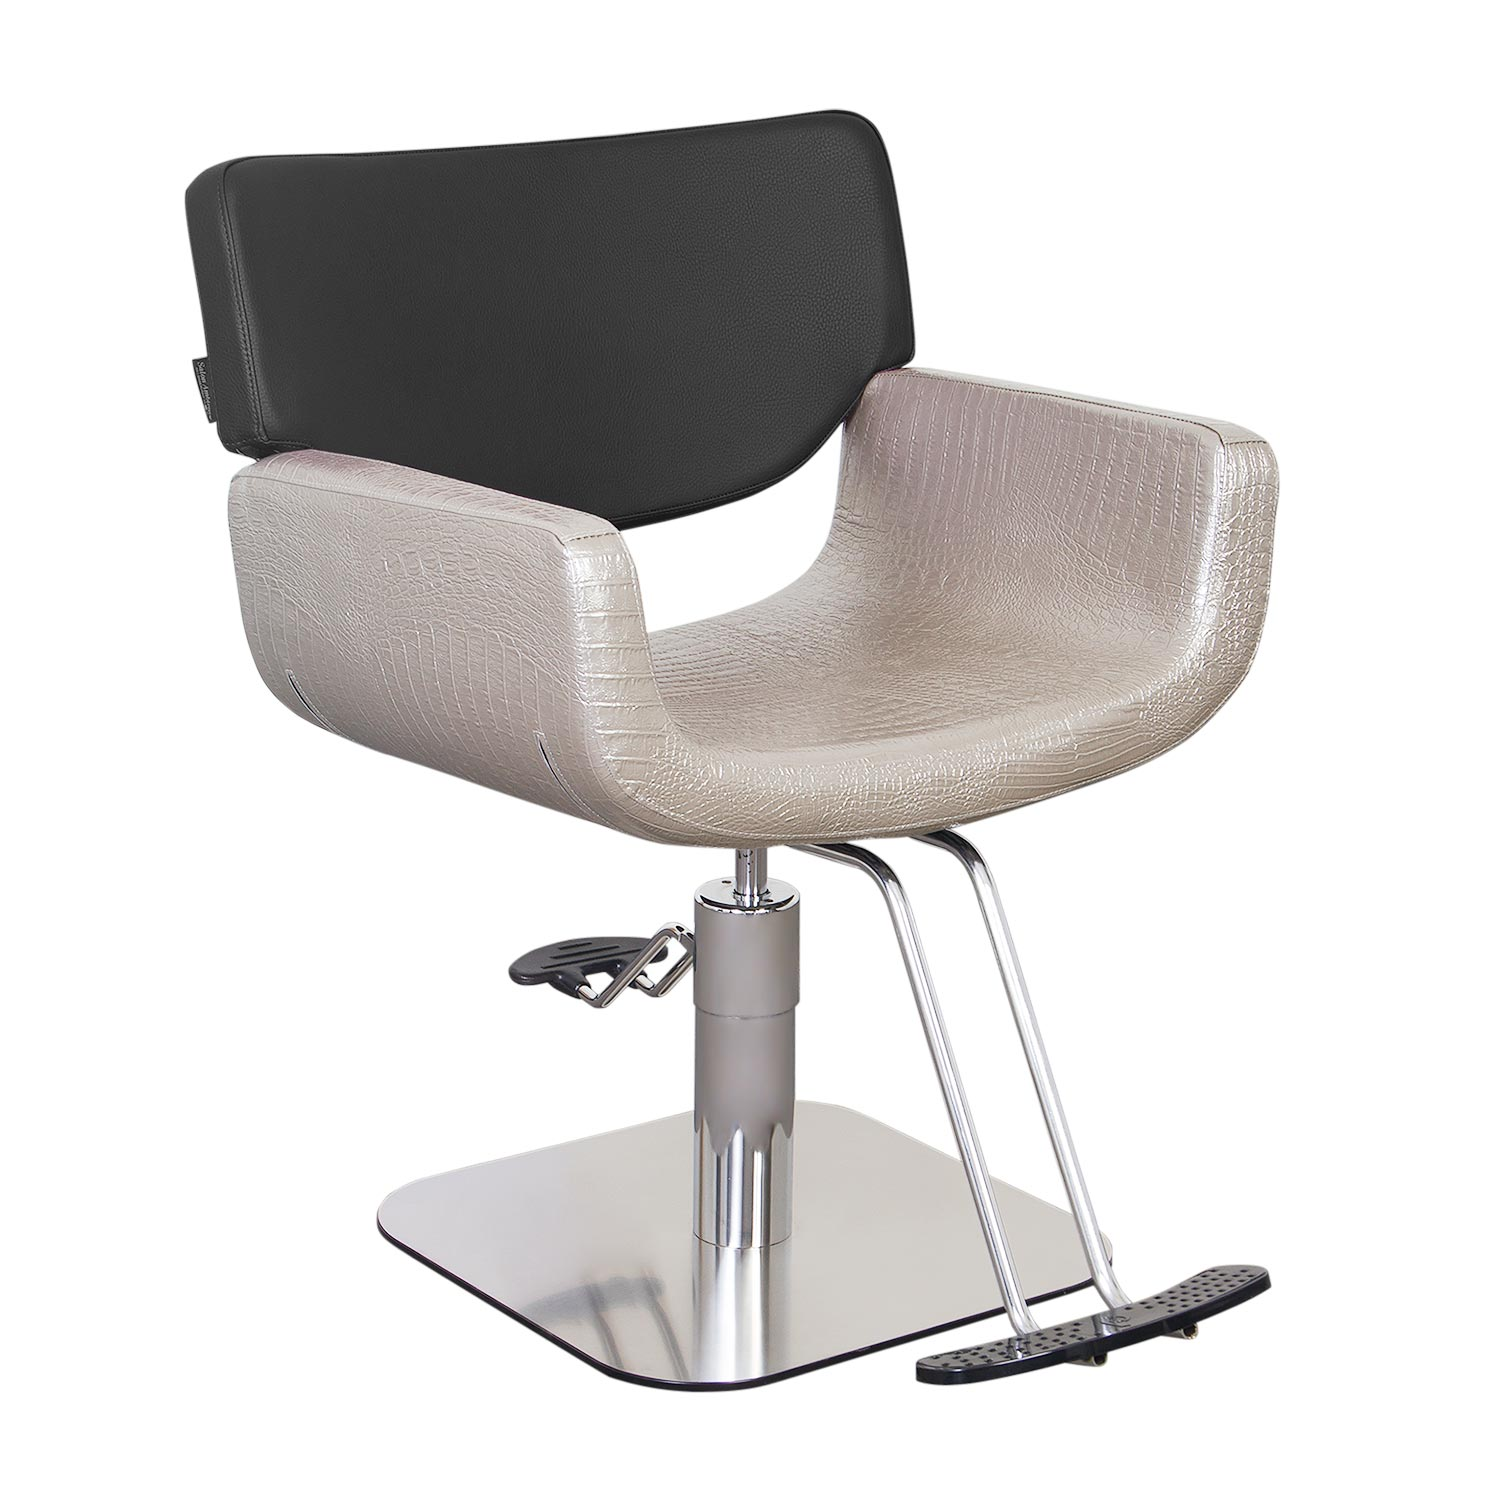 Quadro Hair Salon Chair by Salon Ambience alternative product image 16